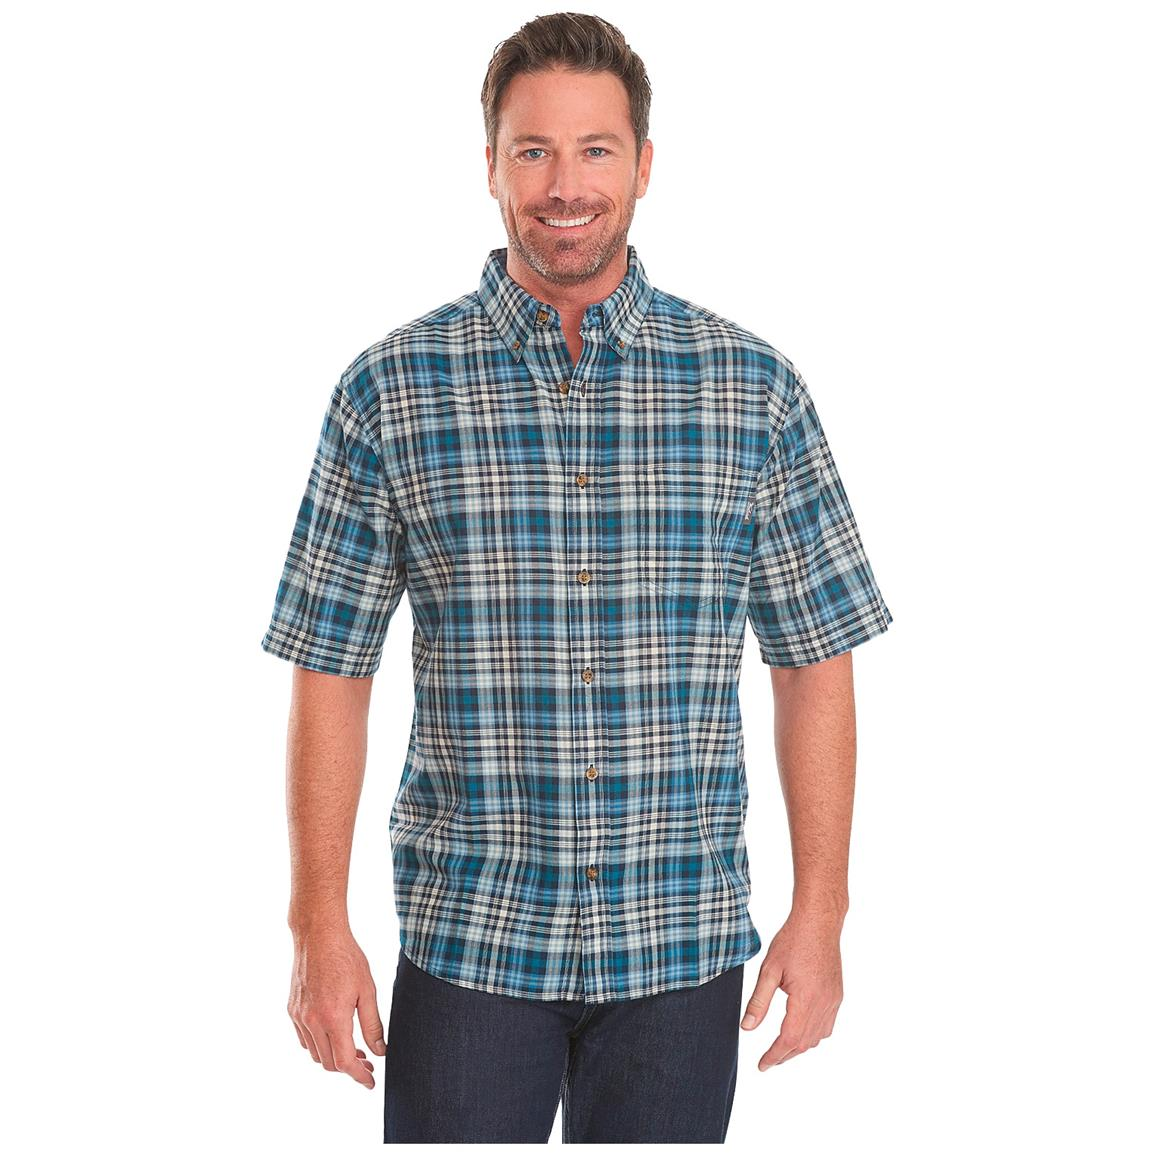 Woolrich Men's Timberline Short Sleeve Shirt, Nordic Blue